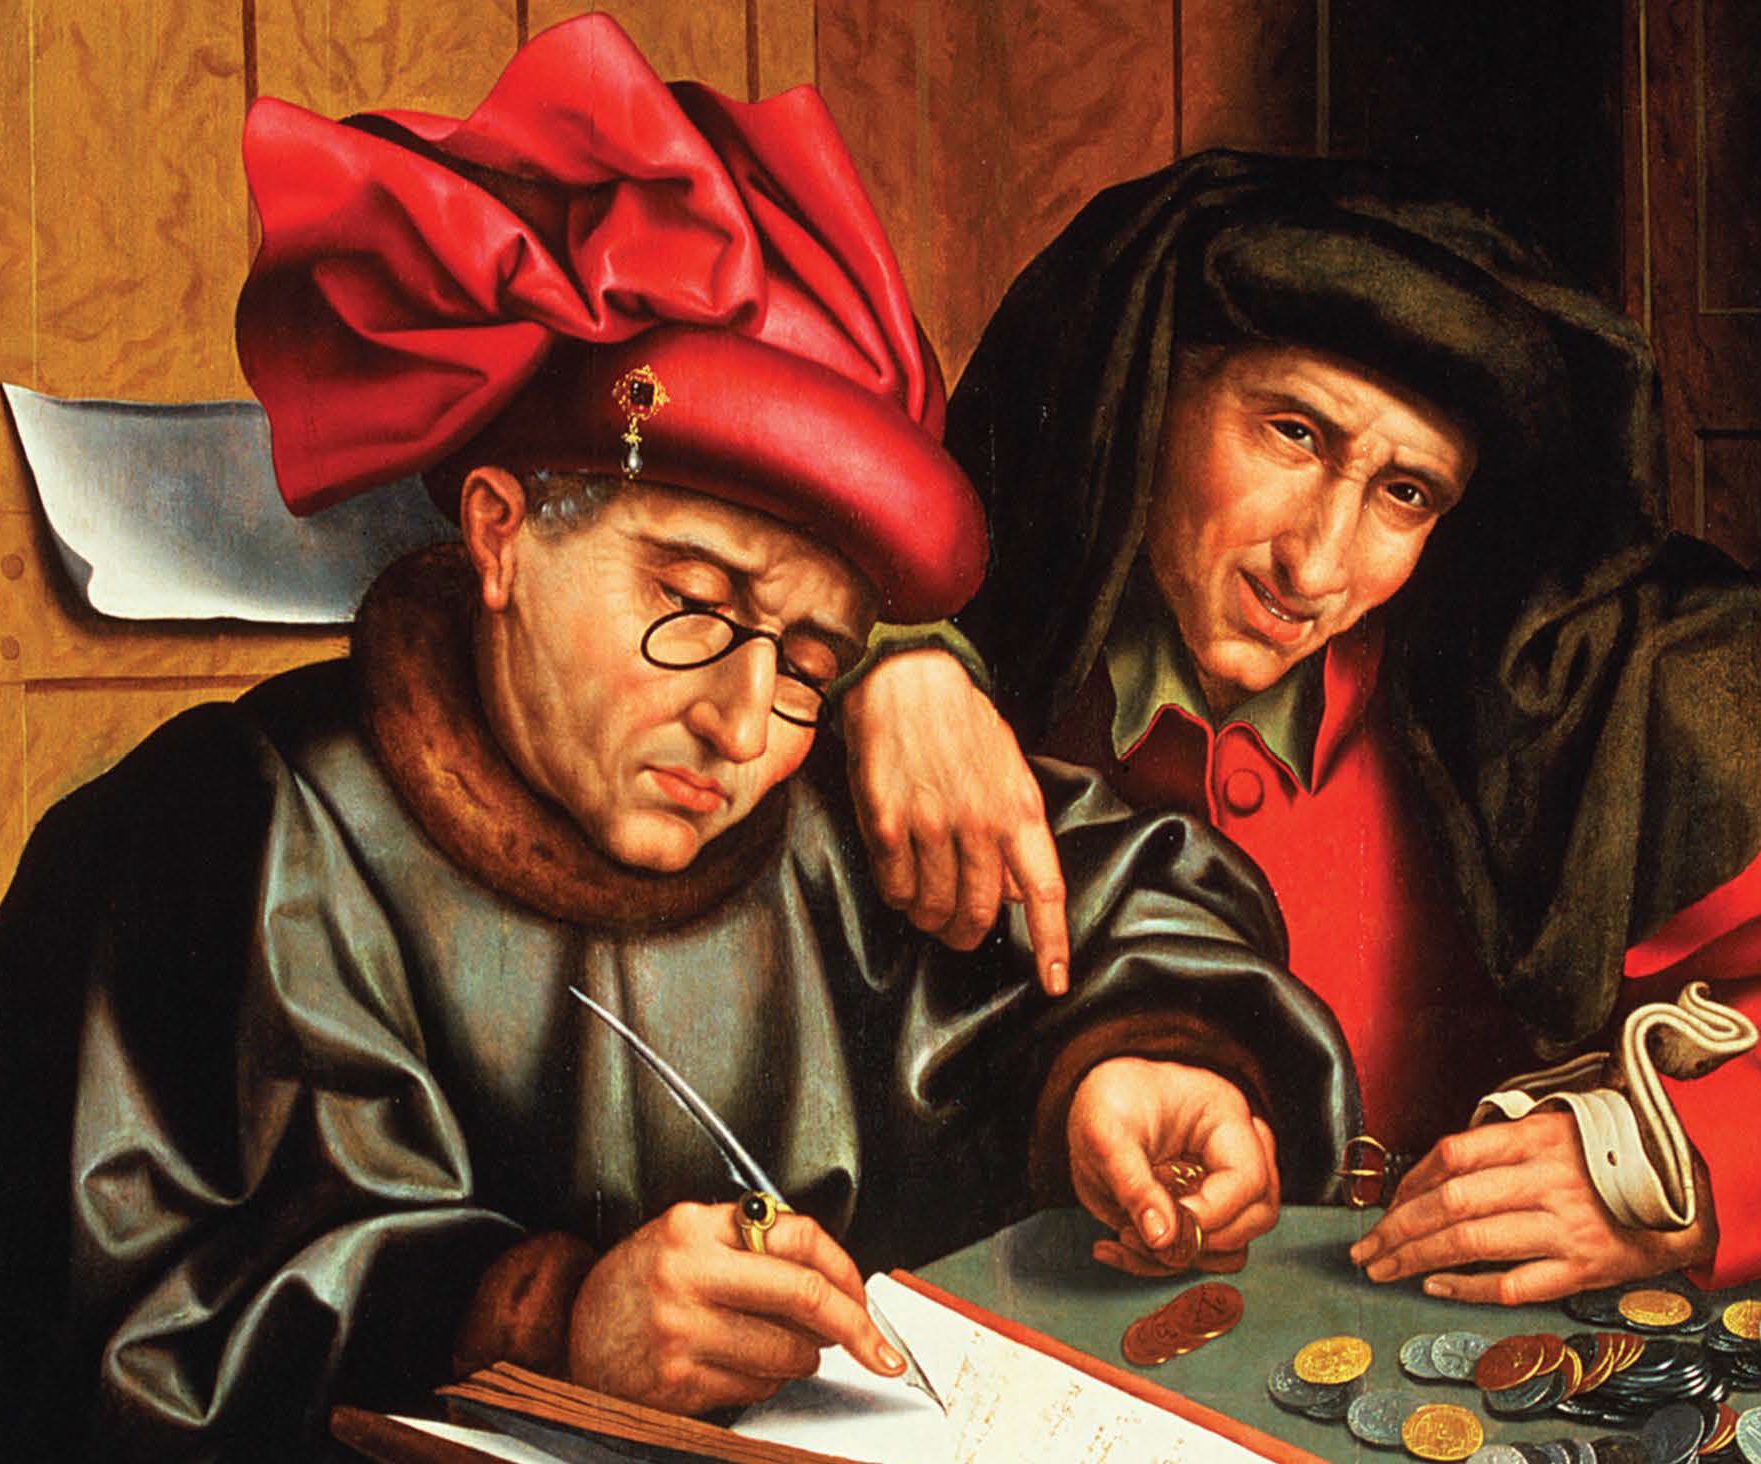 Merchant and scribe in painting show property rights developing first for elites.